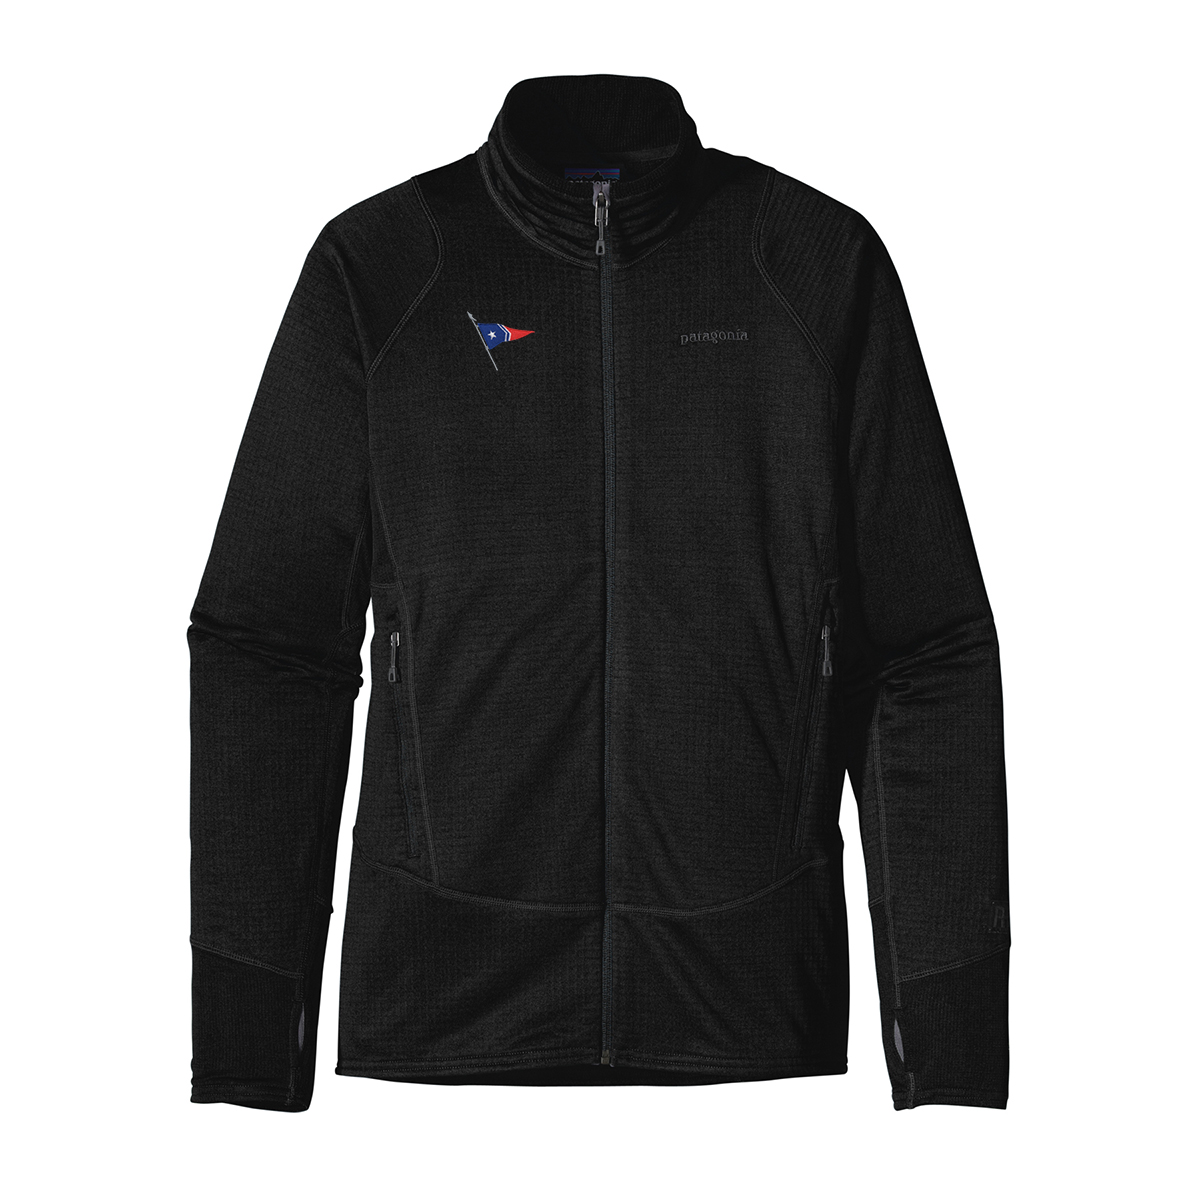 GHYC - M'S R1 FULL ZIP JACKET